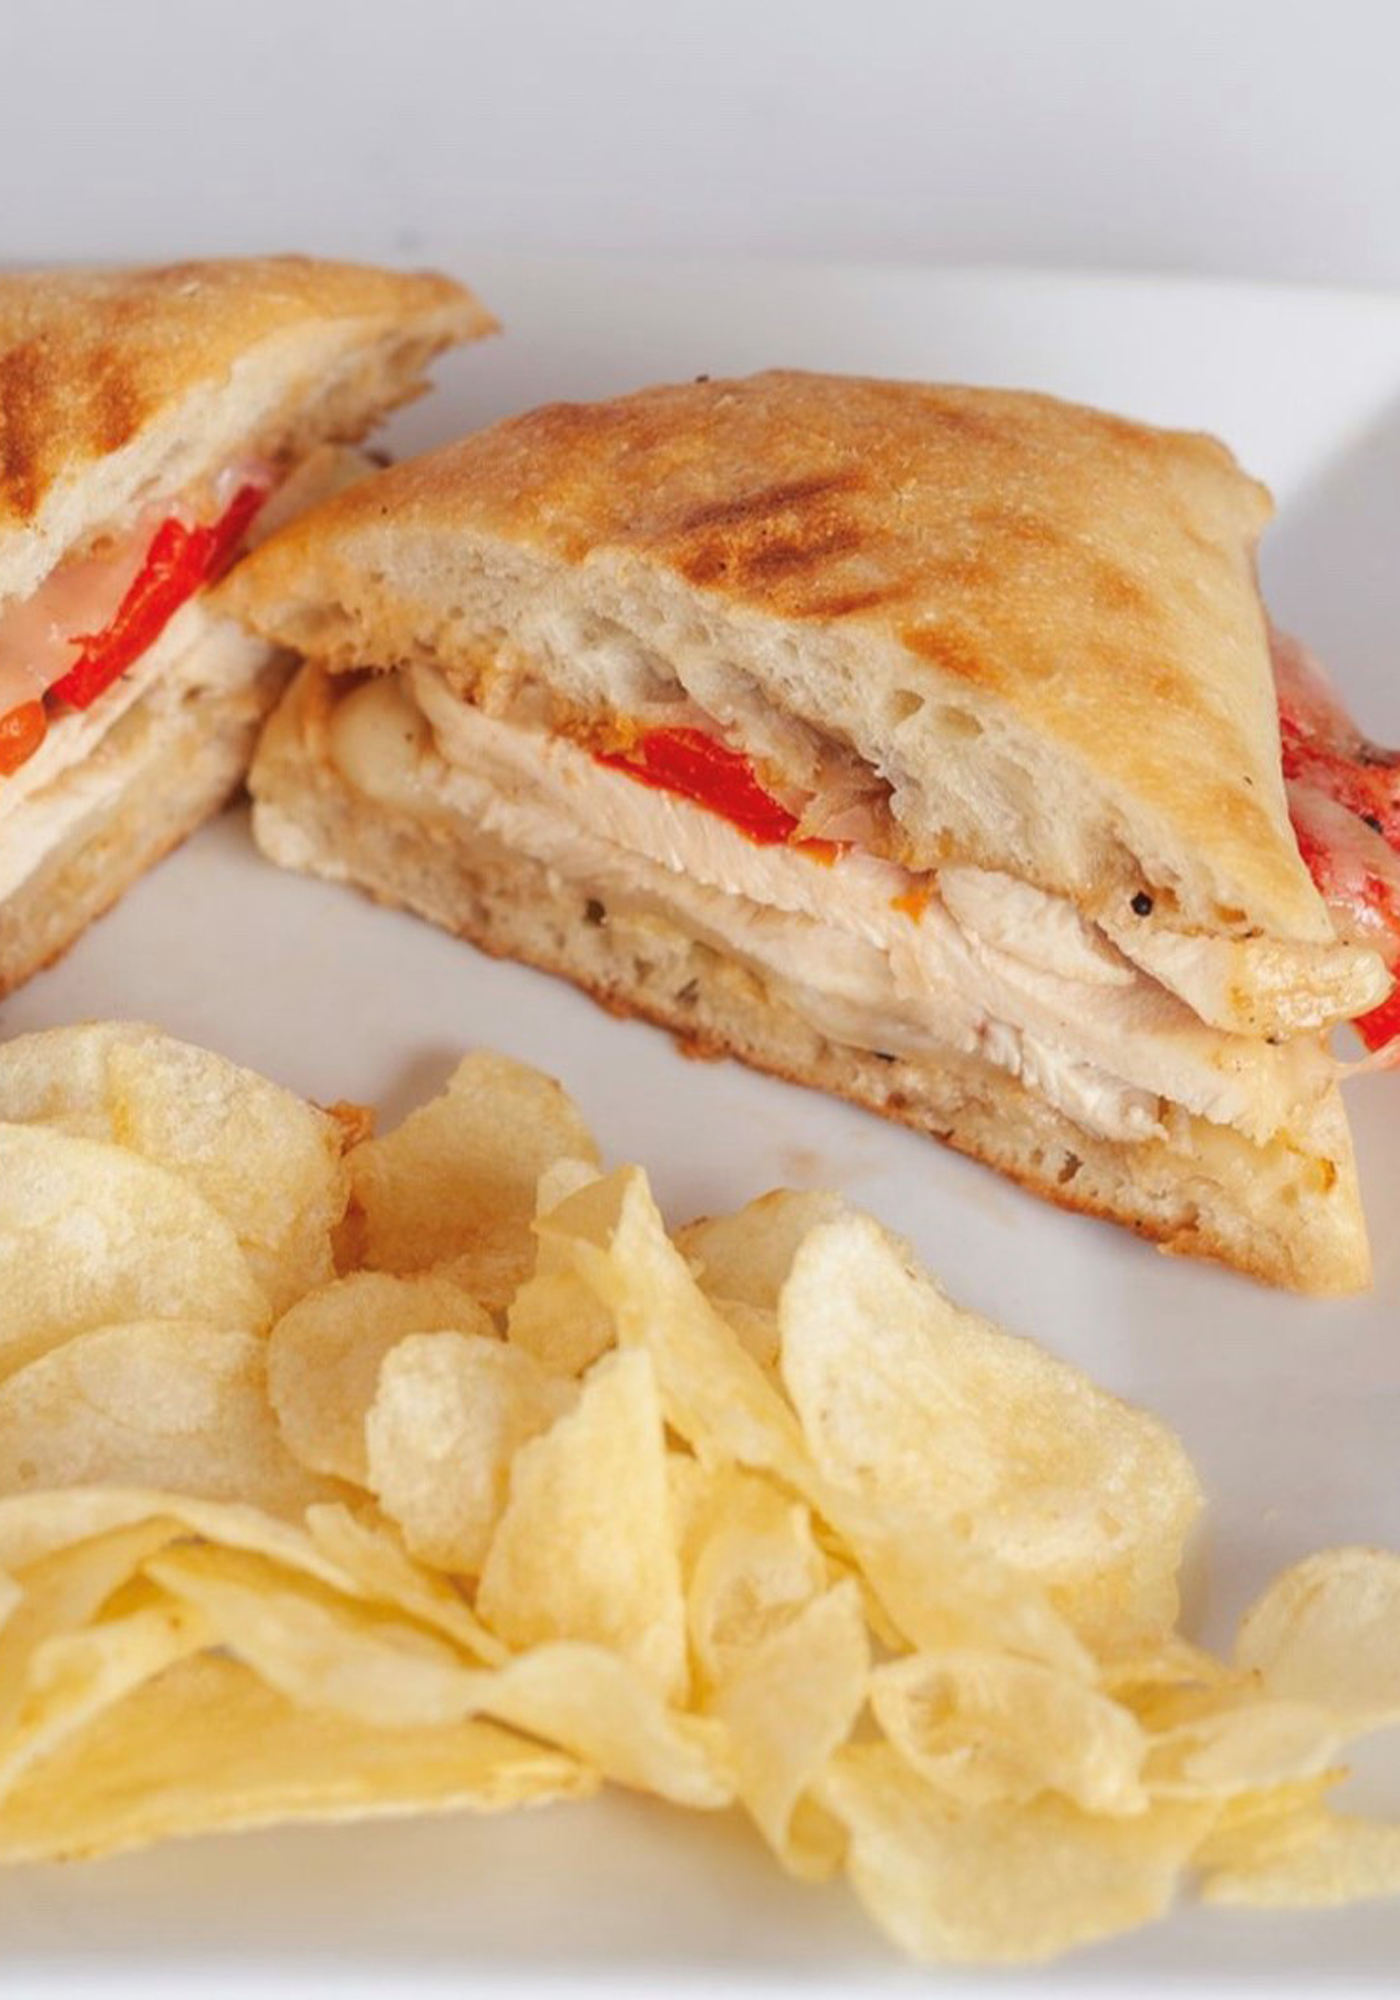 Grilled Chicken with Roasted Red Peppers Panini